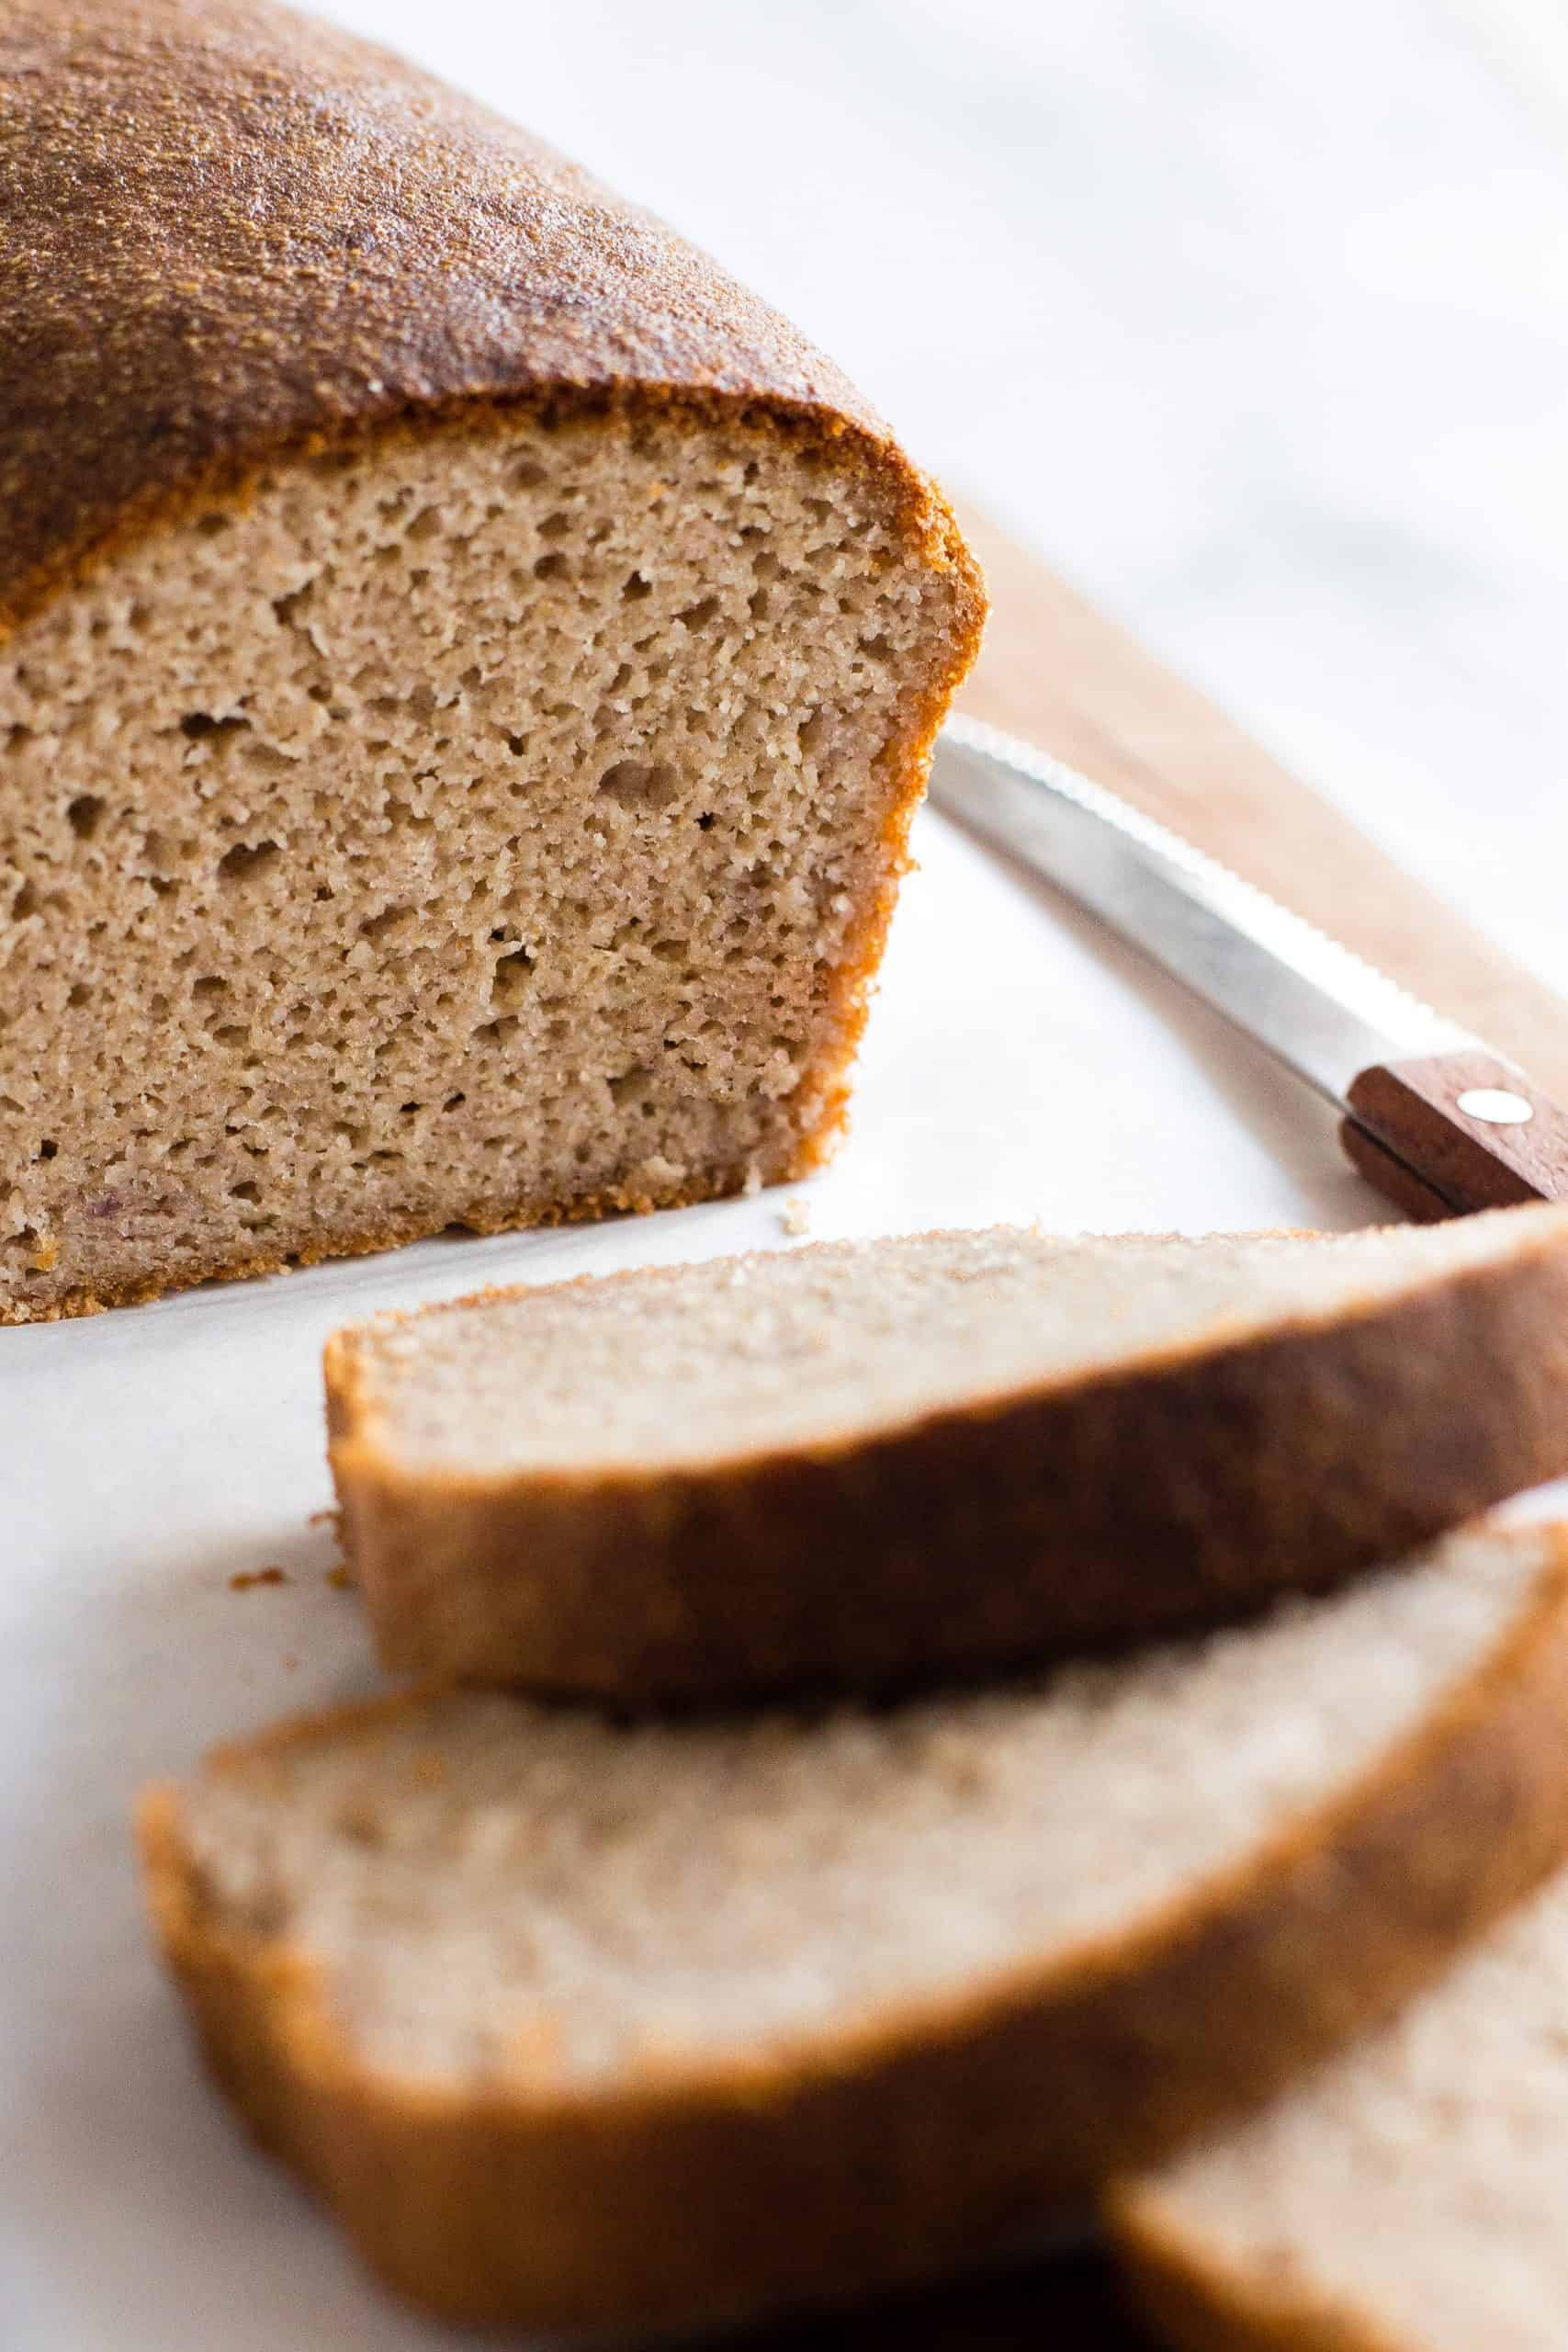 An up-close shot of the texture of the inside of a loaf of brown bread.